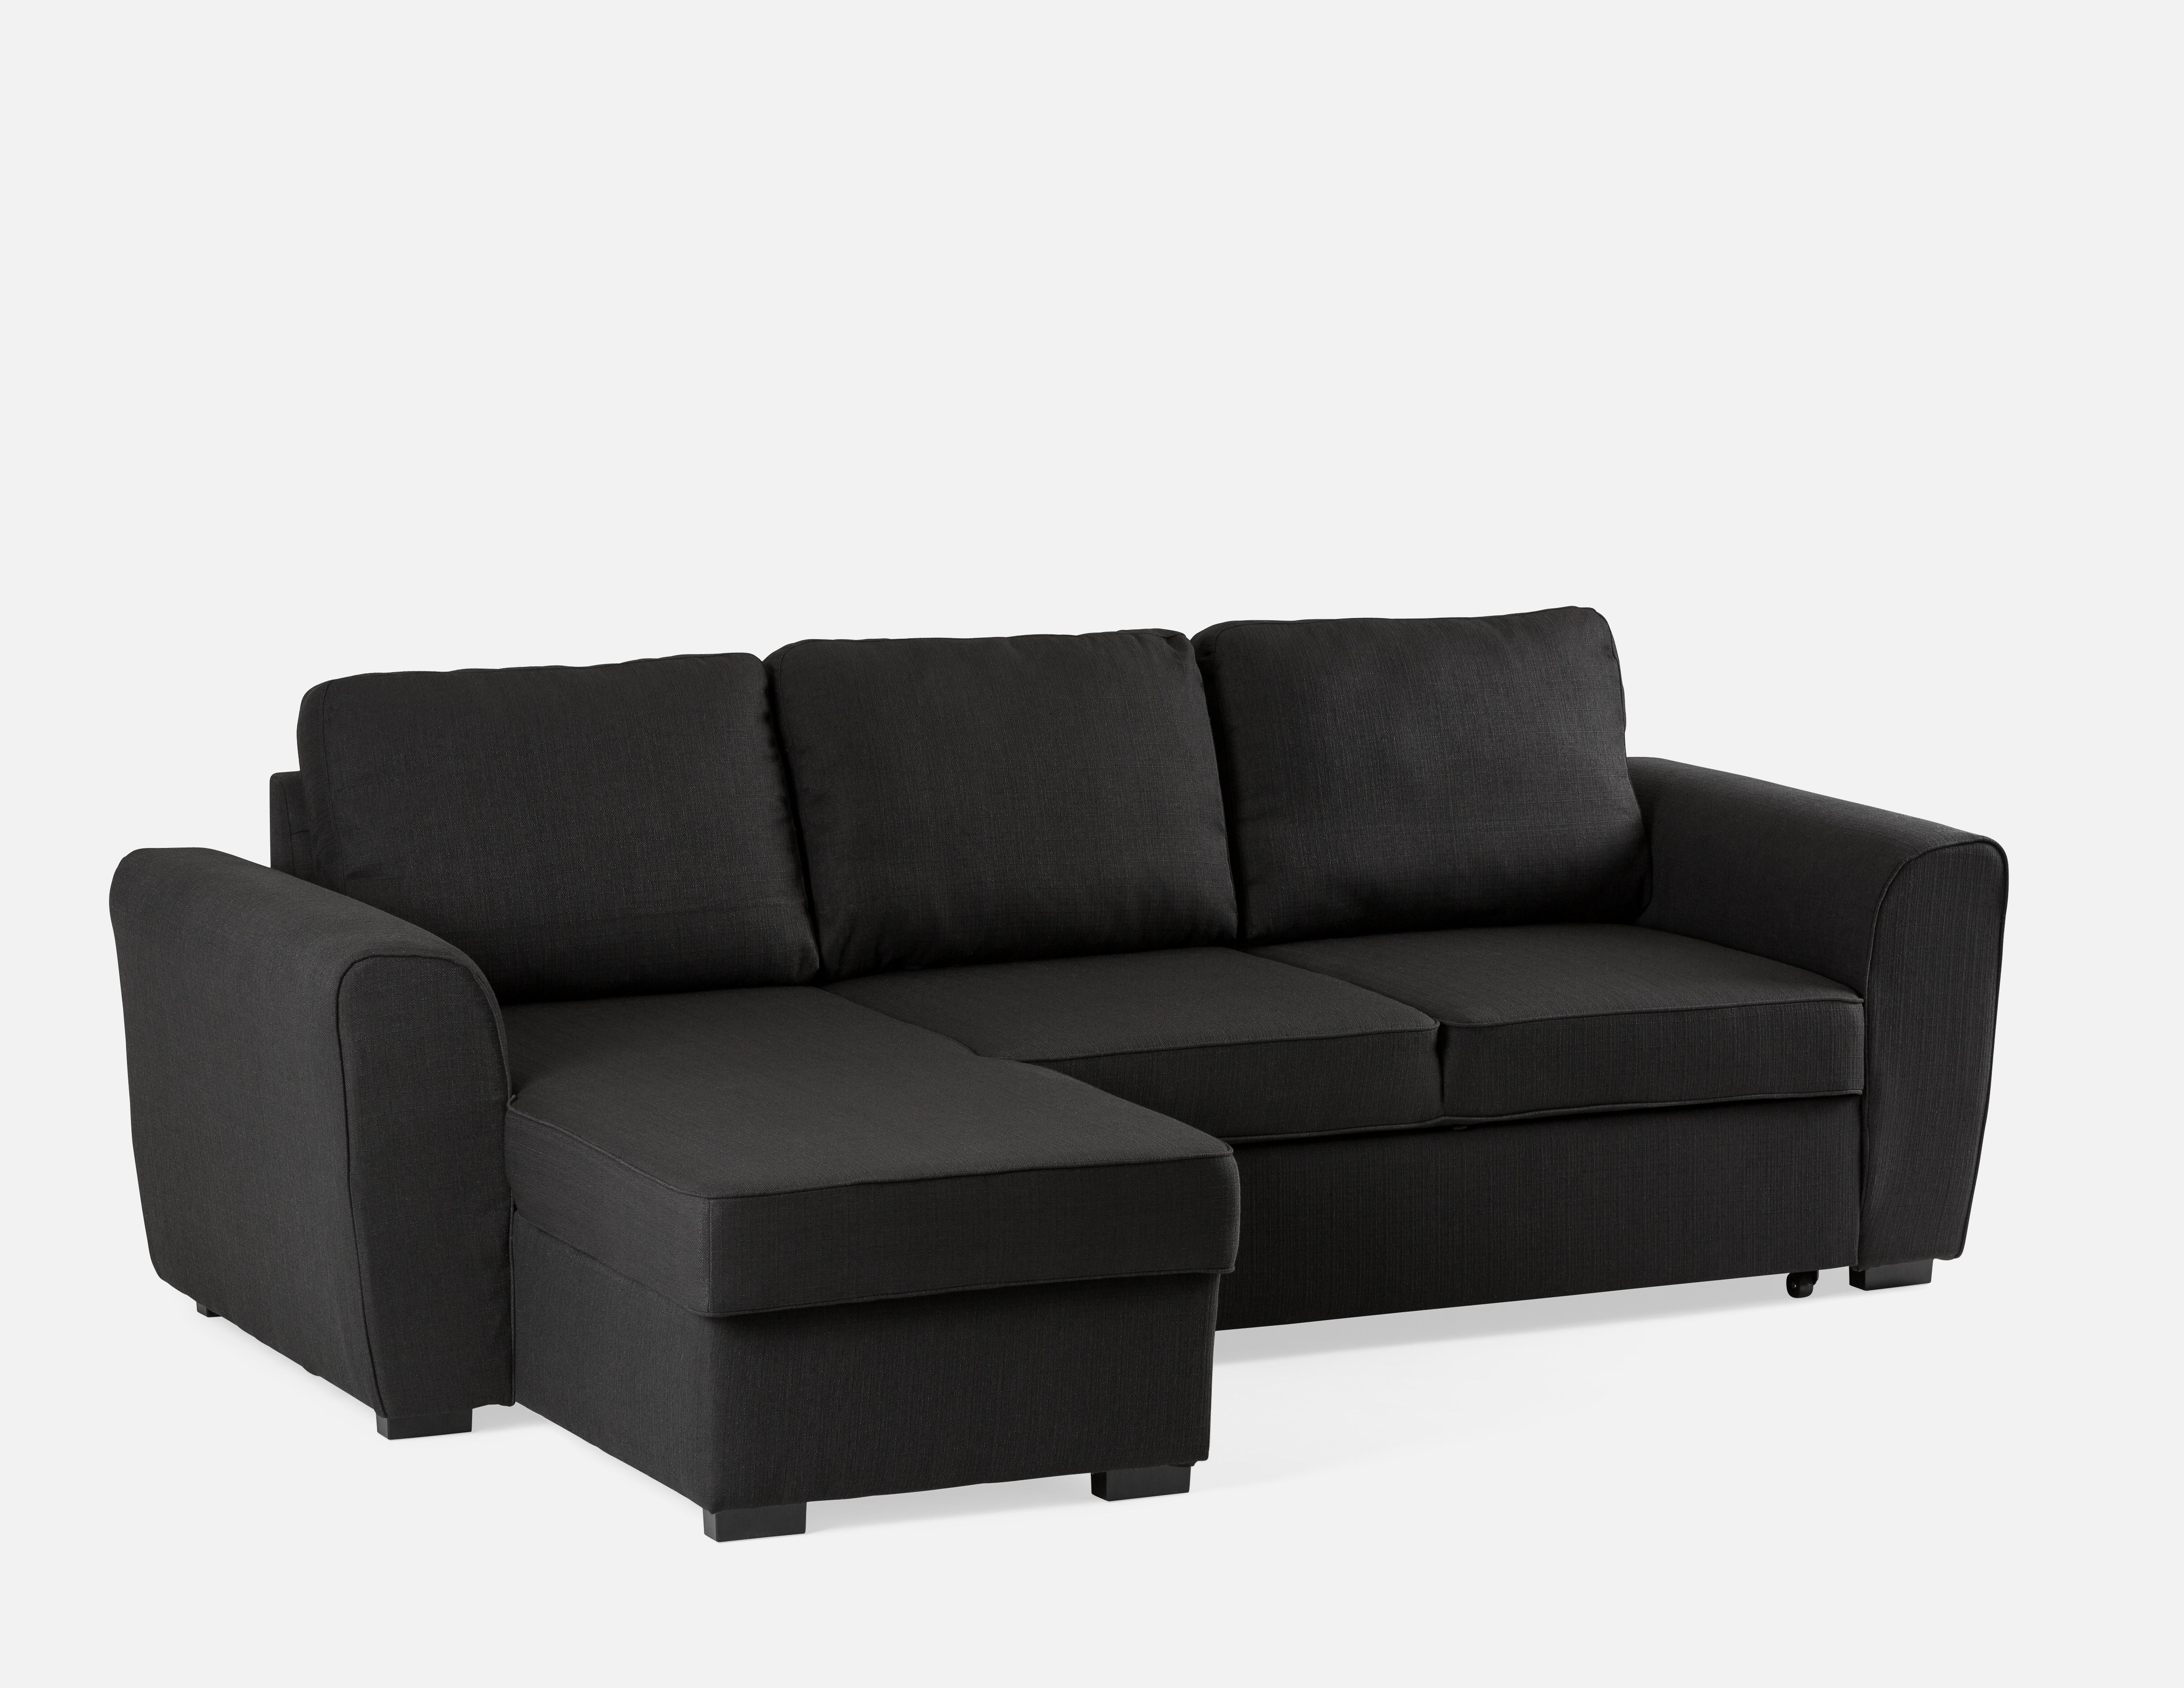 Black Interchangeable Sectional Sofa Bed With Storage Structube Berto Sofa Bed With Storage Sofa Bed Modern Couch